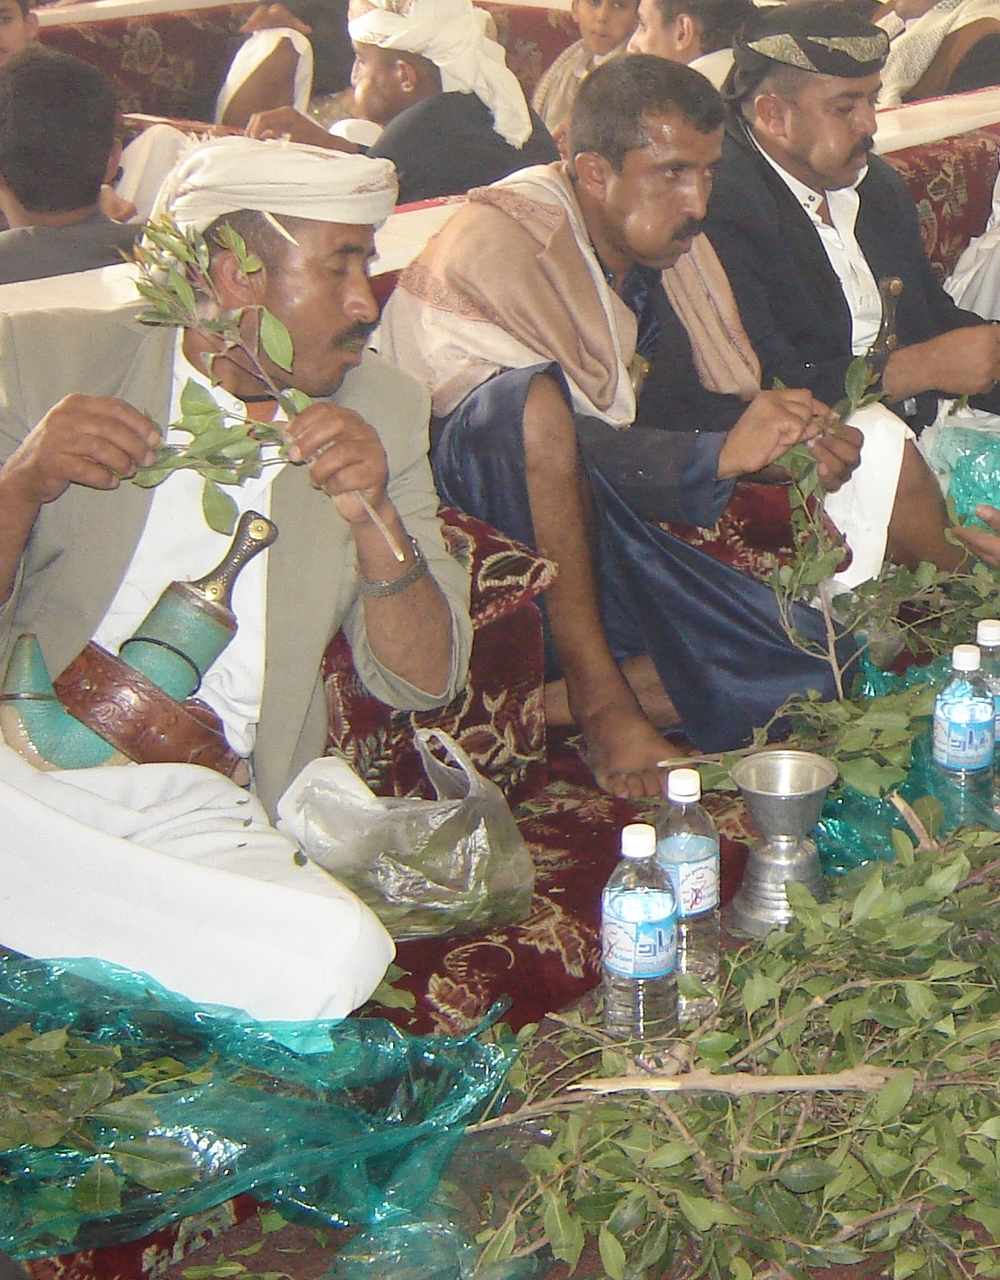 There are about 7 million qat chewers in Yemen, most of whom are men.